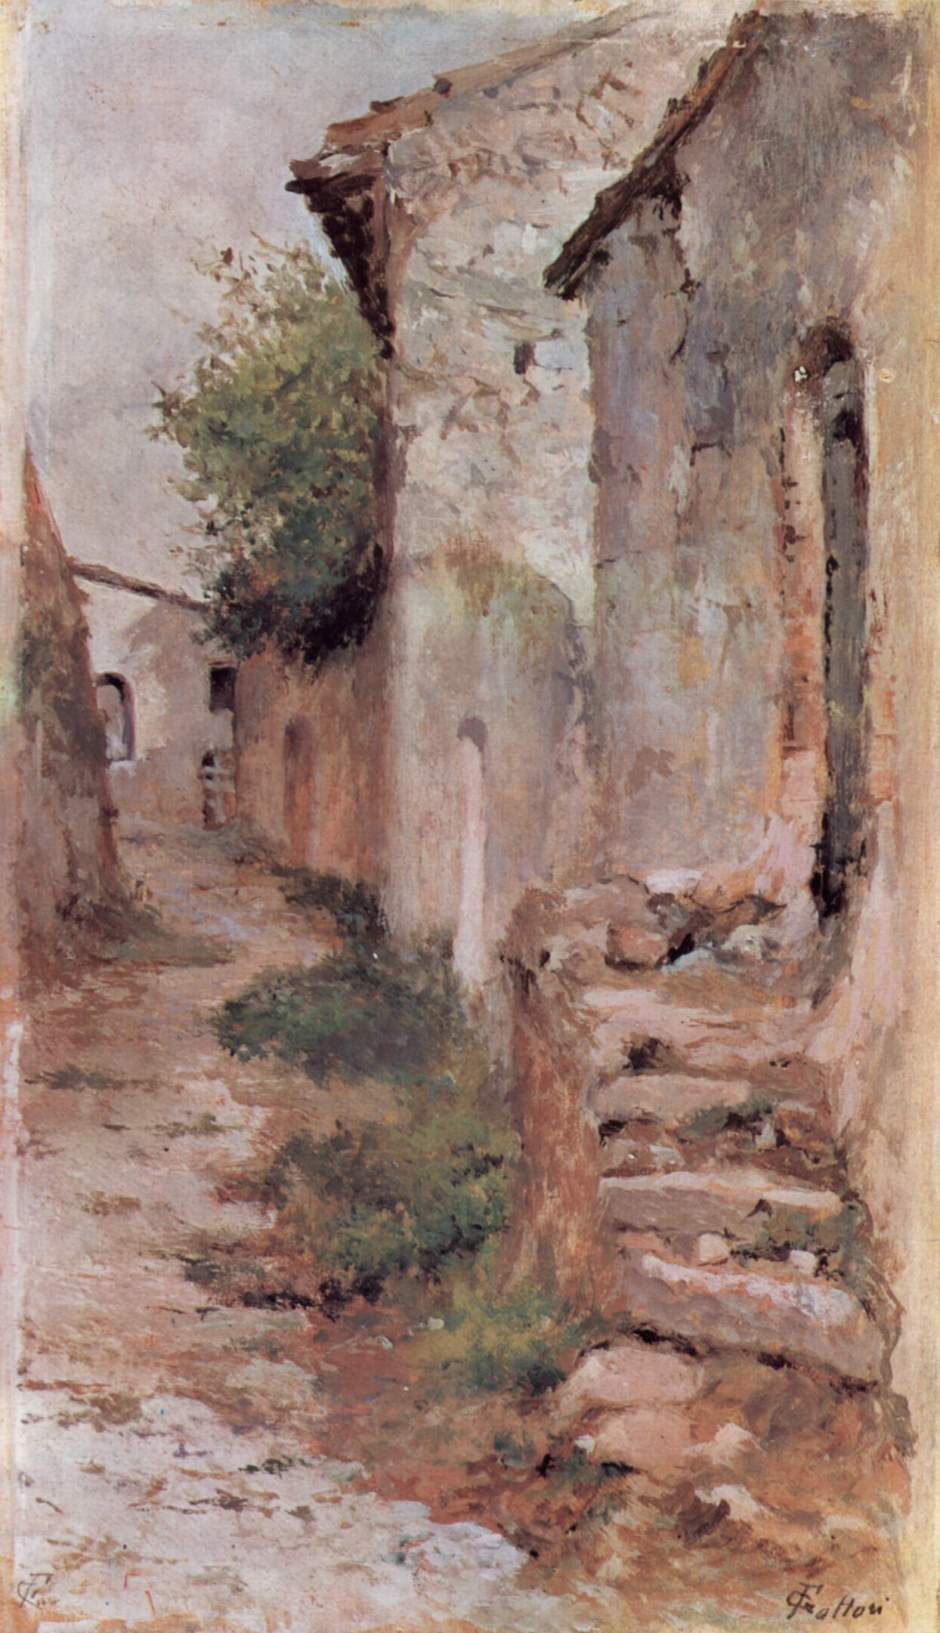 Giovanni Fattori, Village Road (1903-4), oil on wood, 24 x 14 cm, Galleria d'Arte Moderna di Palazzo Pitti, Florence. Wikimedia Commons.